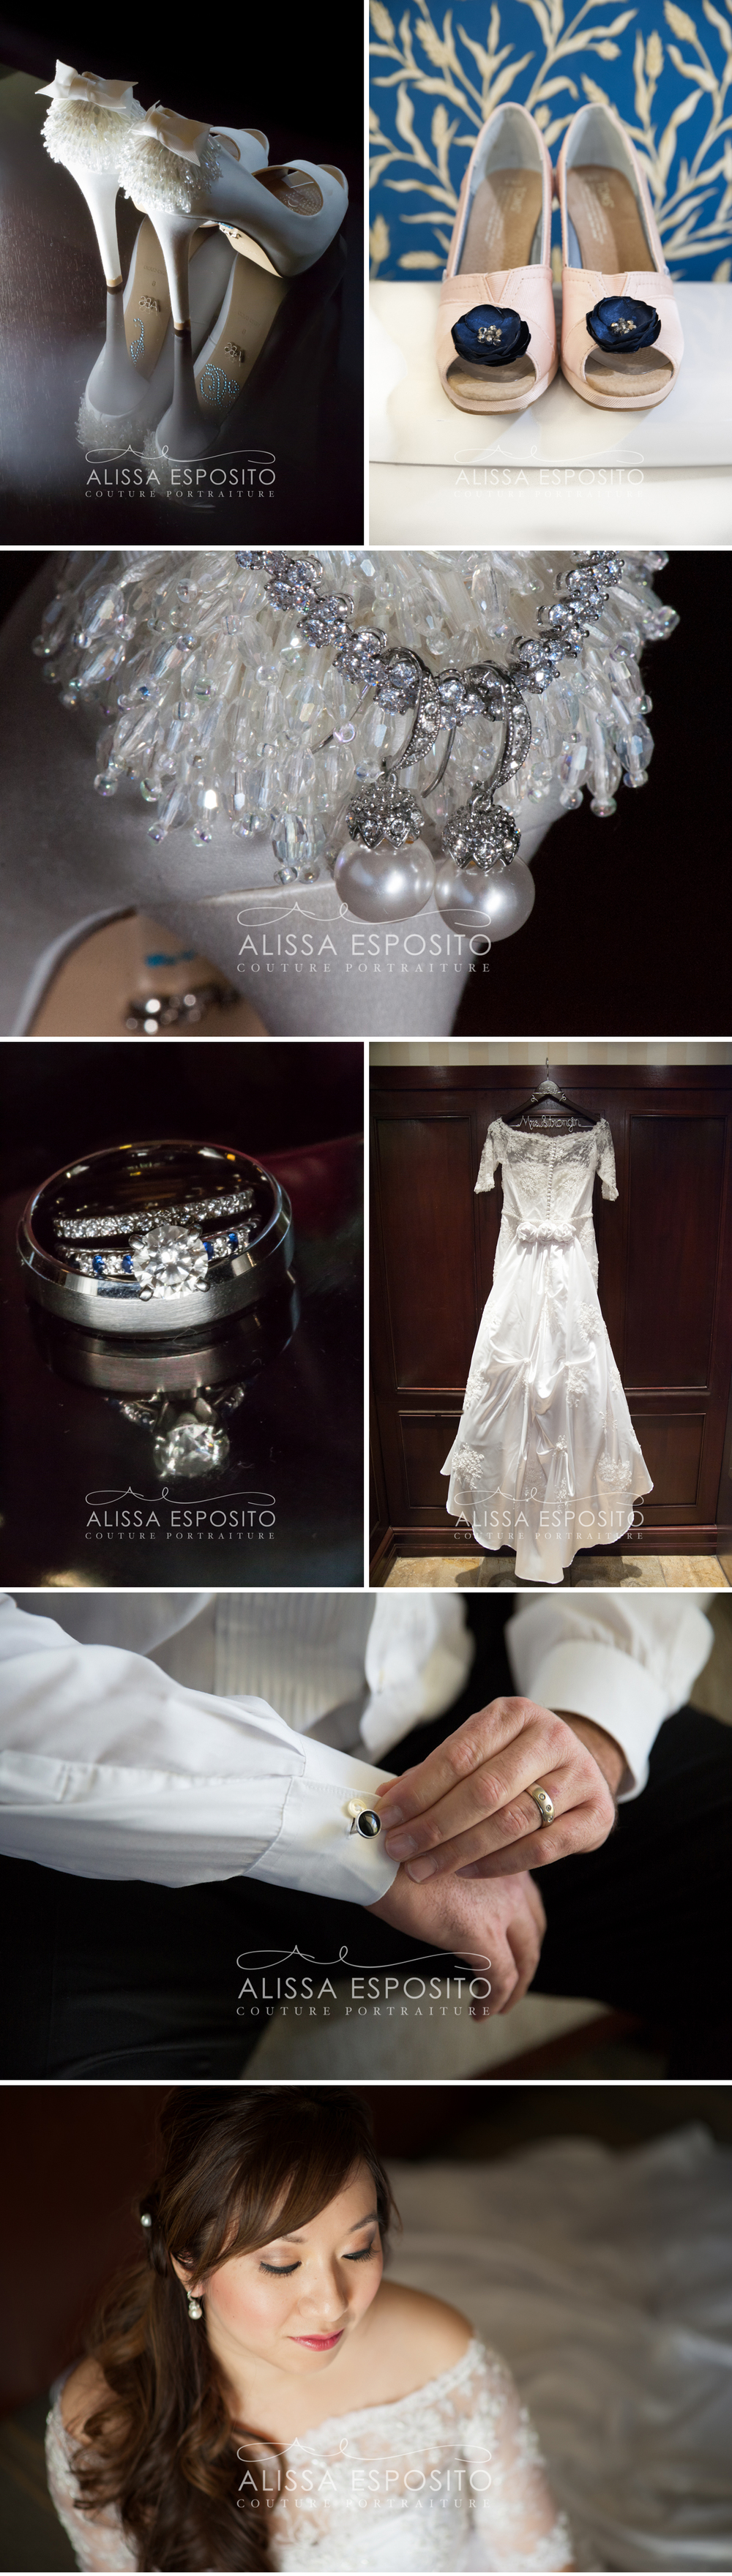 Southern California Wedding Photographer, Alissa Esposito Photography | www.alissaesposito.com